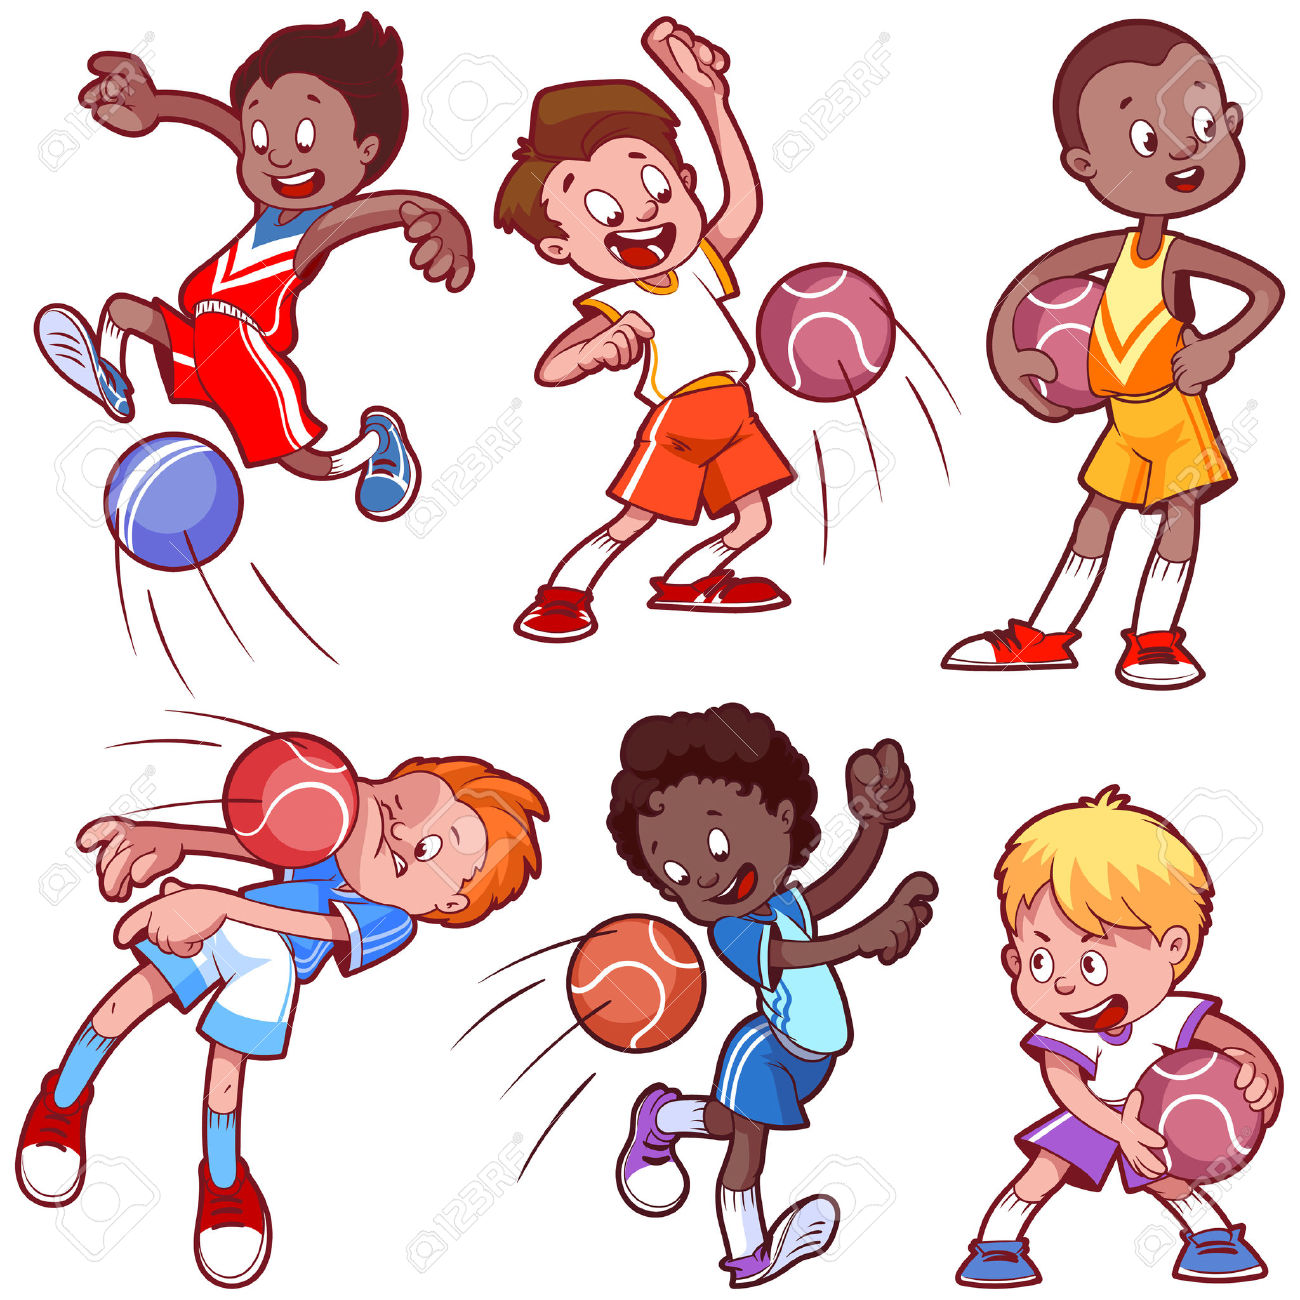 87 Dodgeball Stock Illustrations, Cliparts And Royalty Free.